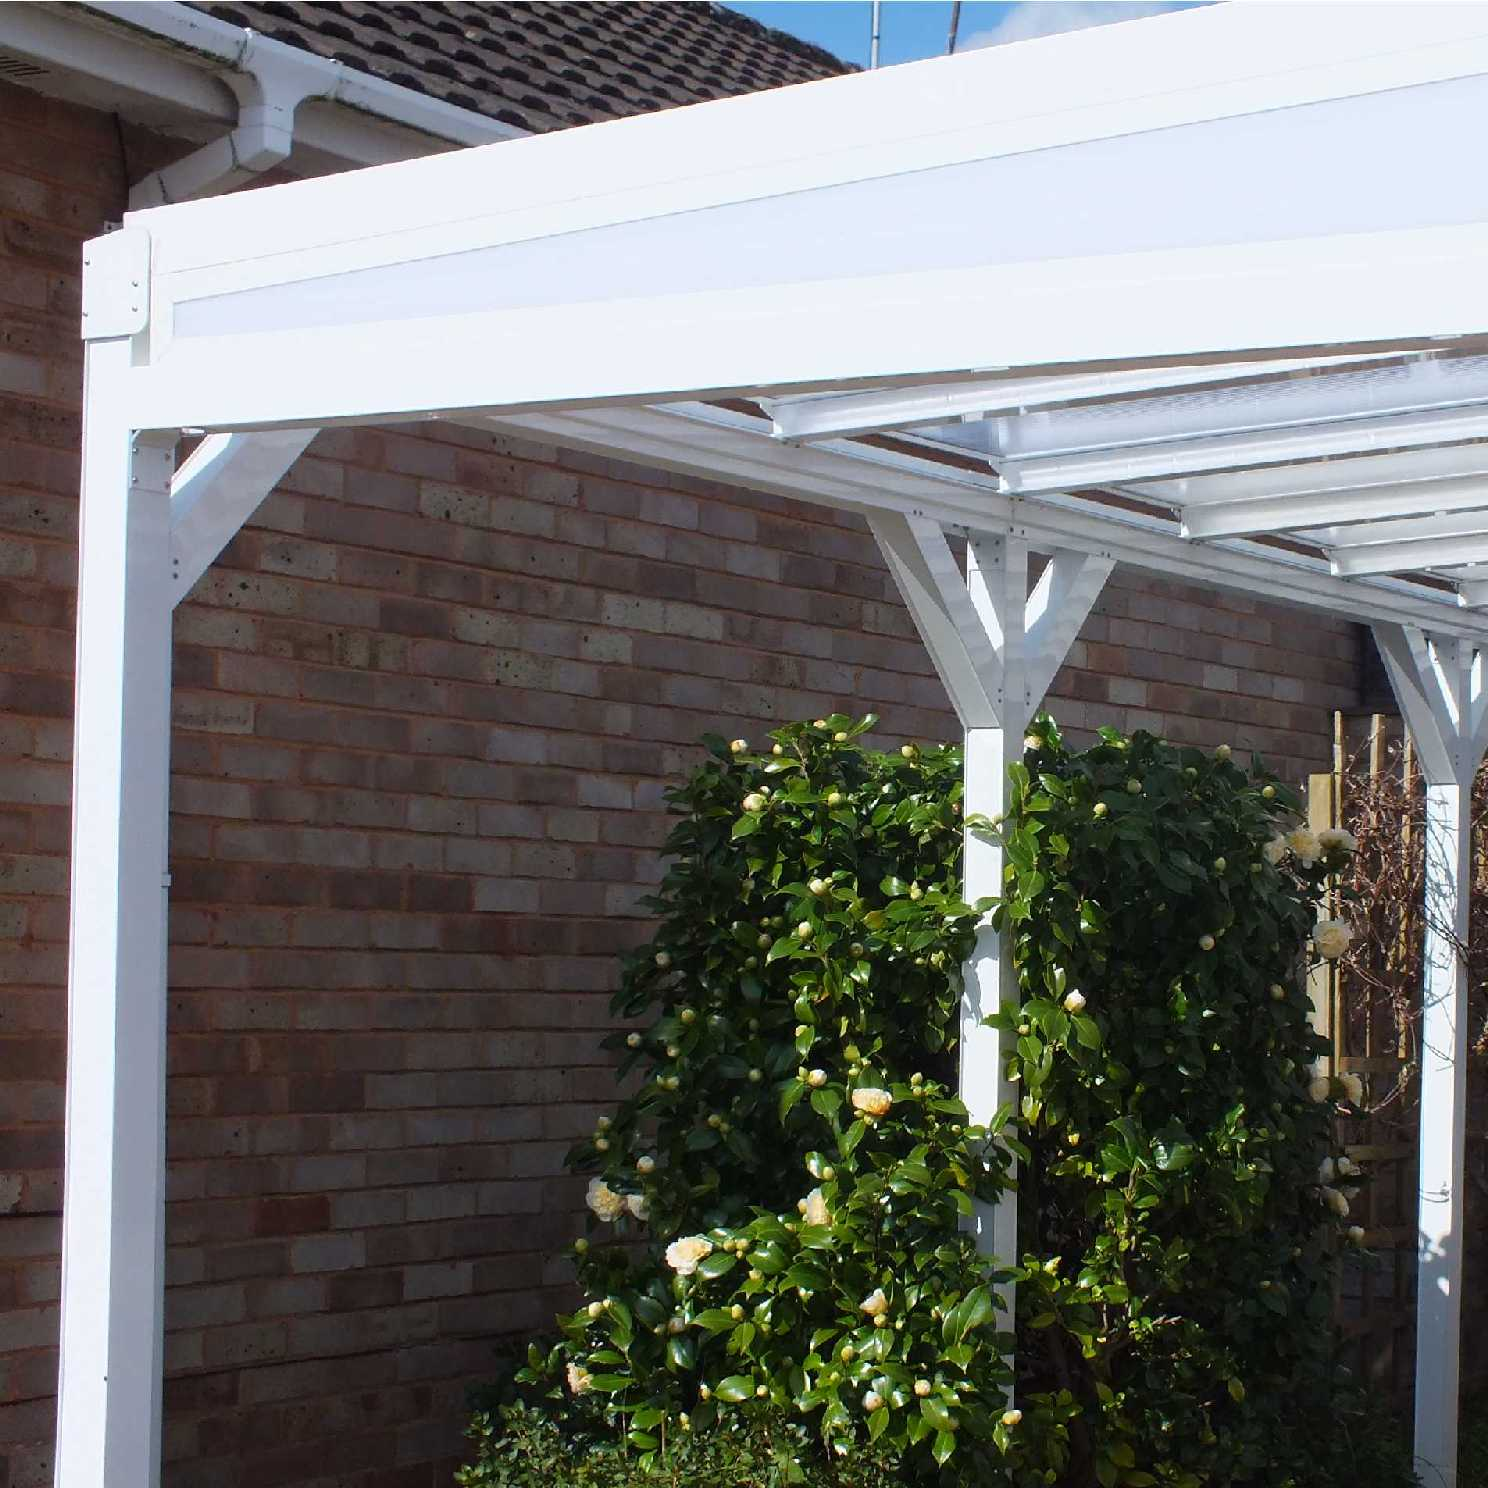 Omega Smart Lean-To Canopy with 16mm Polycarbonate Glazing - 7.8m (W) x 3.5m (P), (4) Supporting Posts from Omega Build